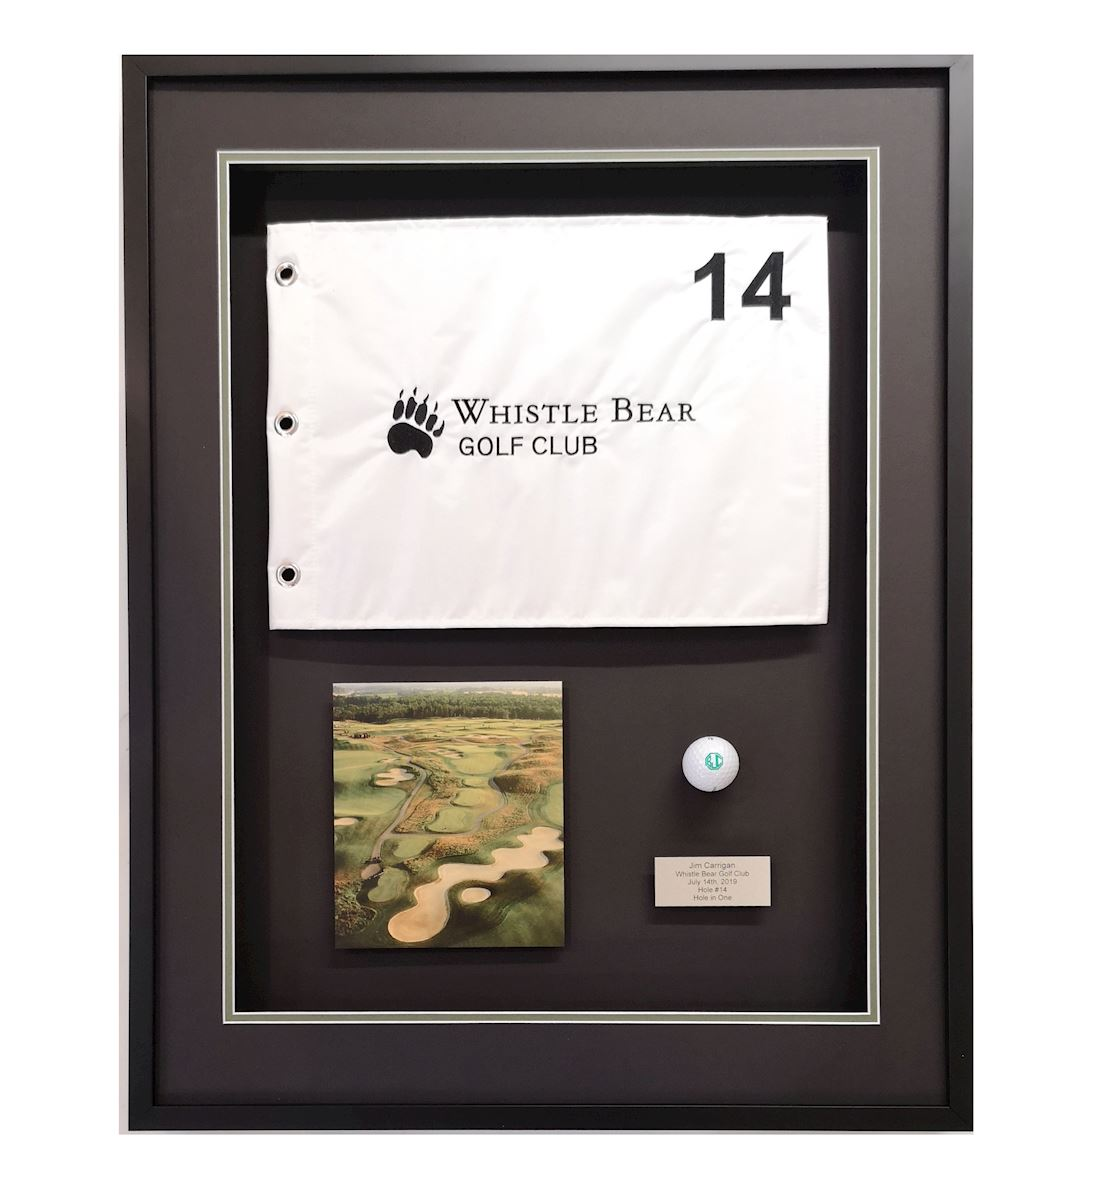 Custom framed Hole in One gold mementoes